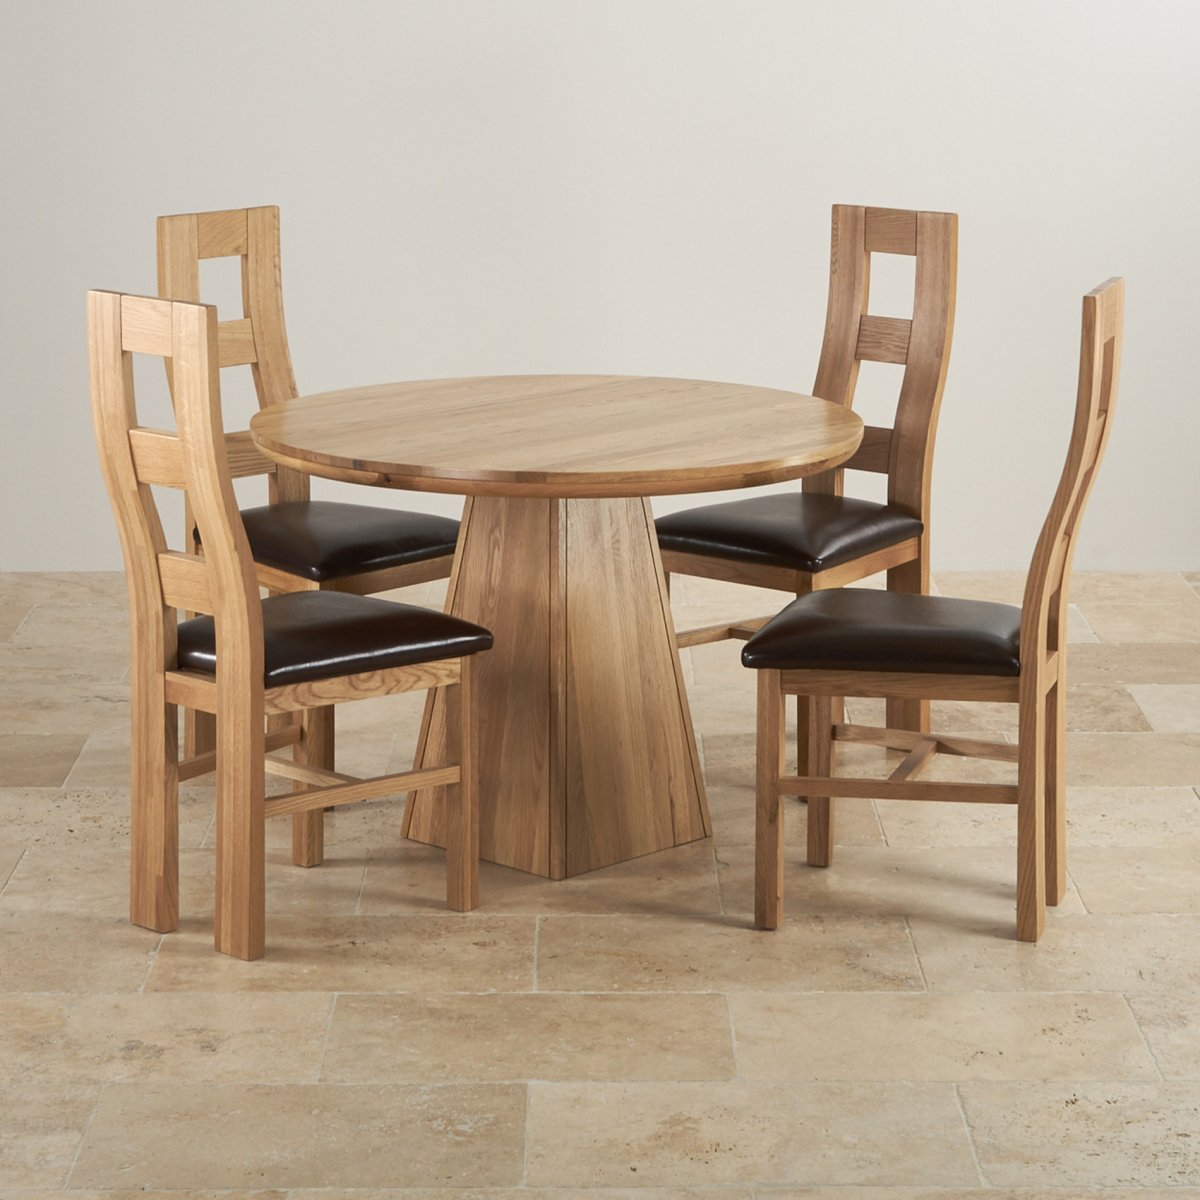 Oak Table And Chairs ~ Provence solid oak dining set ft quot table with chairs